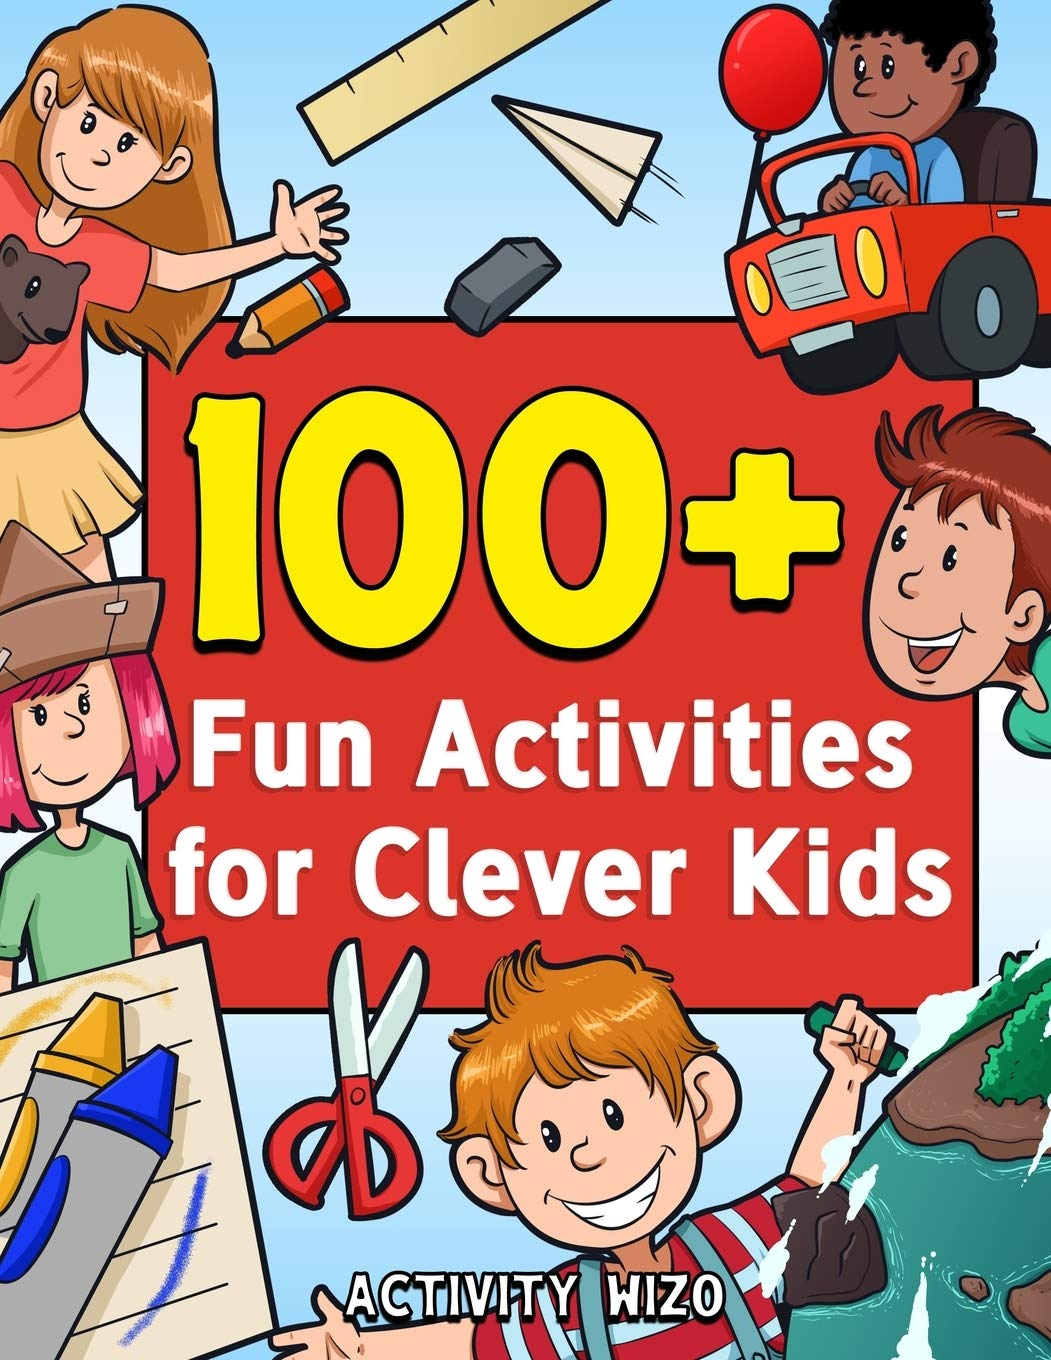 100+ Fun Activities For Clever Kids: Puzzles, Mazes, Coloring, Crafts, Dot To Dot, And More For Ages 4-8 (Jumbo Pack - Book Bundle)